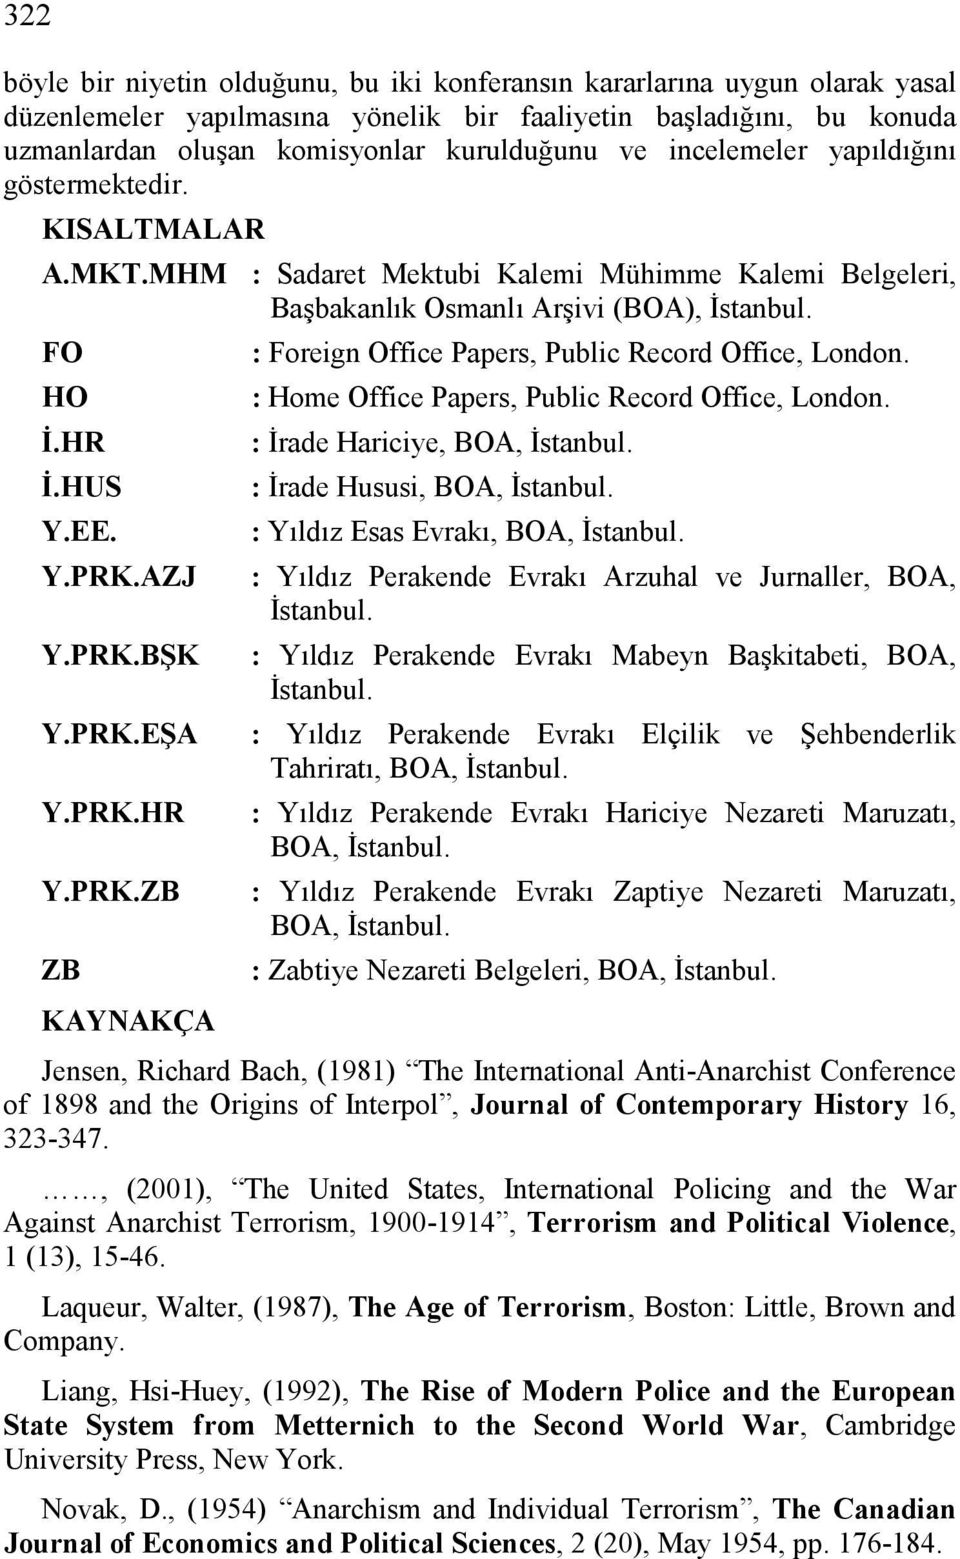 PRK.EŞA Y.PRK.HR Y.PRK.ZB ZB KAYNAKÇA : Foreign Office Papers, Public Record Office, London. : Home Office Papers, Public Record Office, London. : İrade Hariciye, BOA, İstanbul.